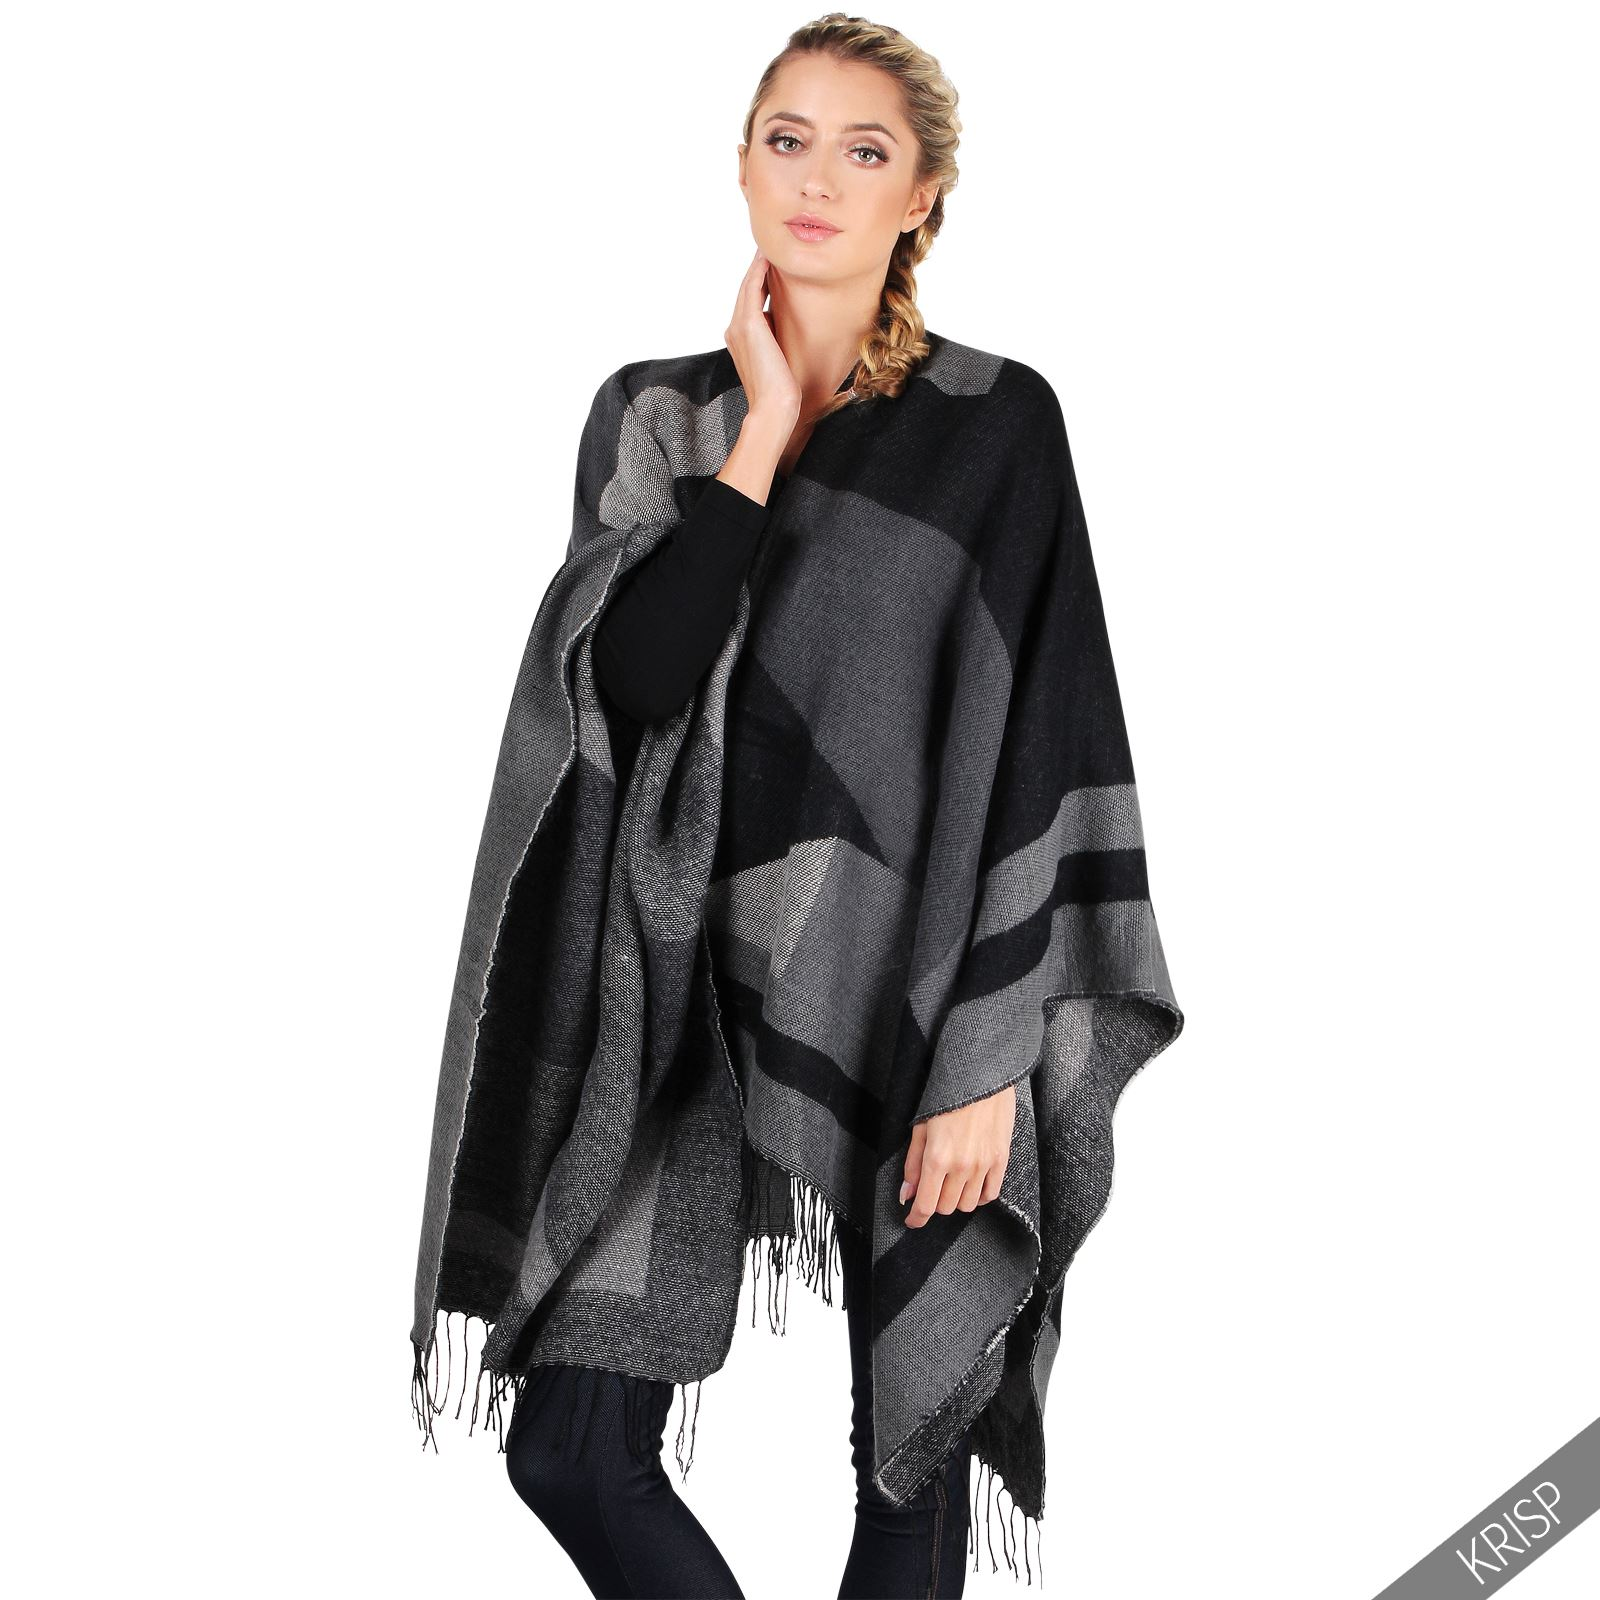 femmes cape poncho gilet long chaude echarpe tour de cou plaid chaud hiver ebay. Black Bedroom Furniture Sets. Home Design Ideas